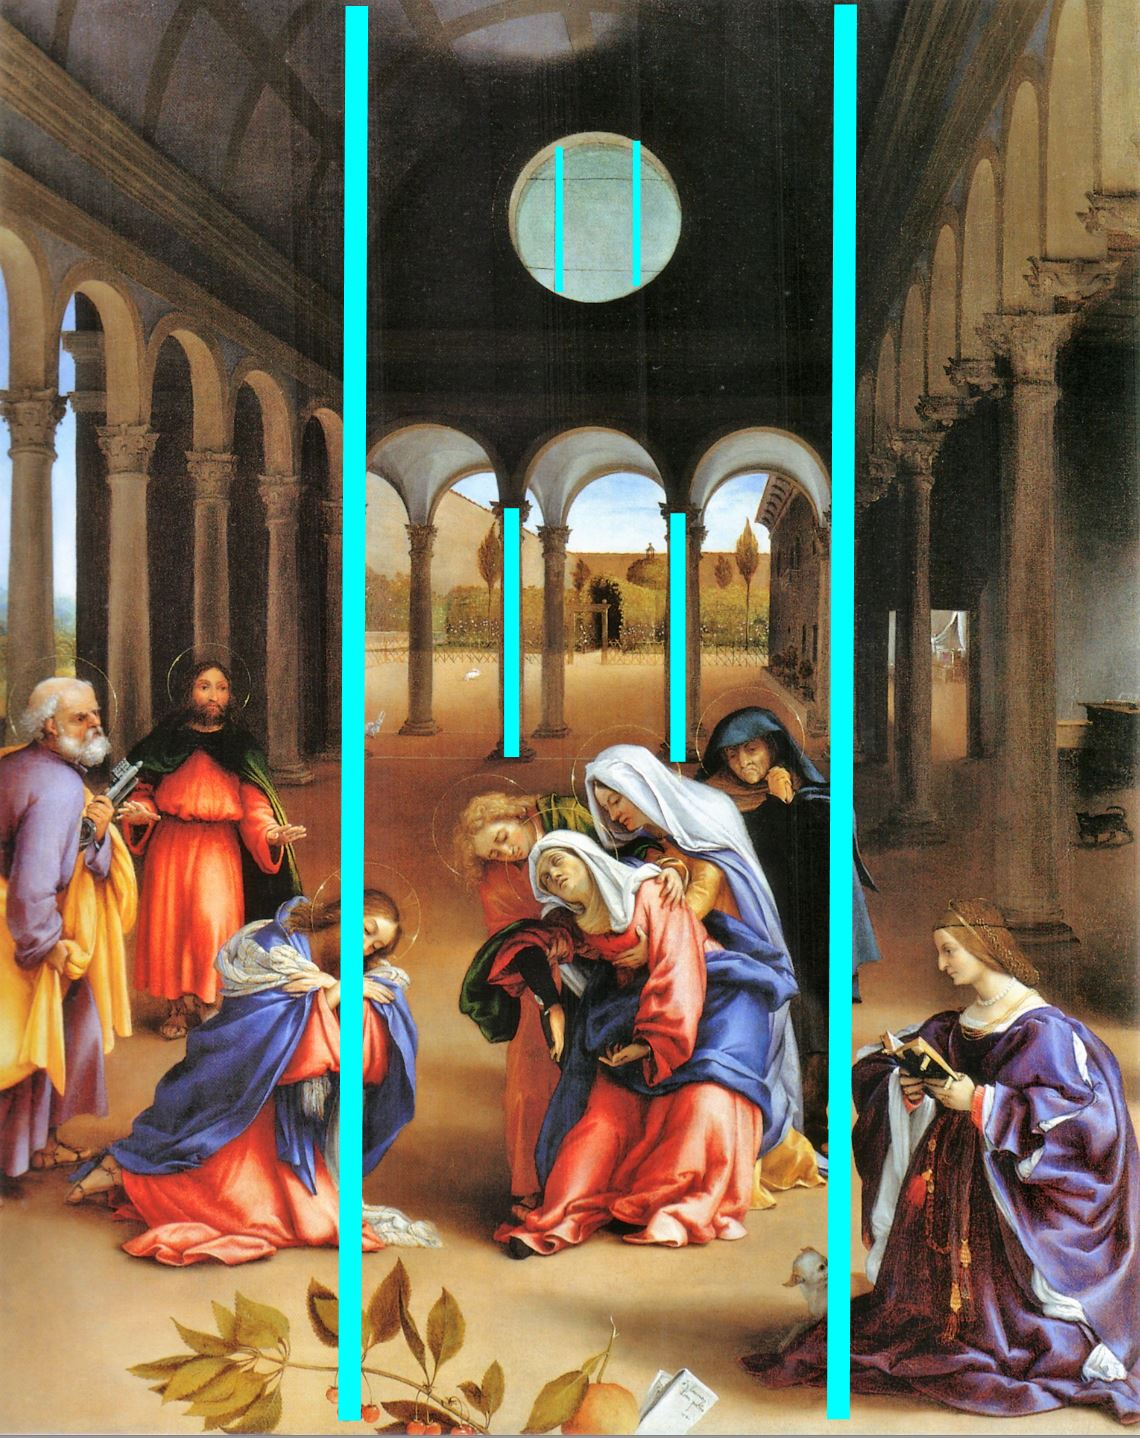 Lotto 1521 Christ taking leave o fhis mother avec Elisabetta Rota Gemaldegalerie, Berlin schema3